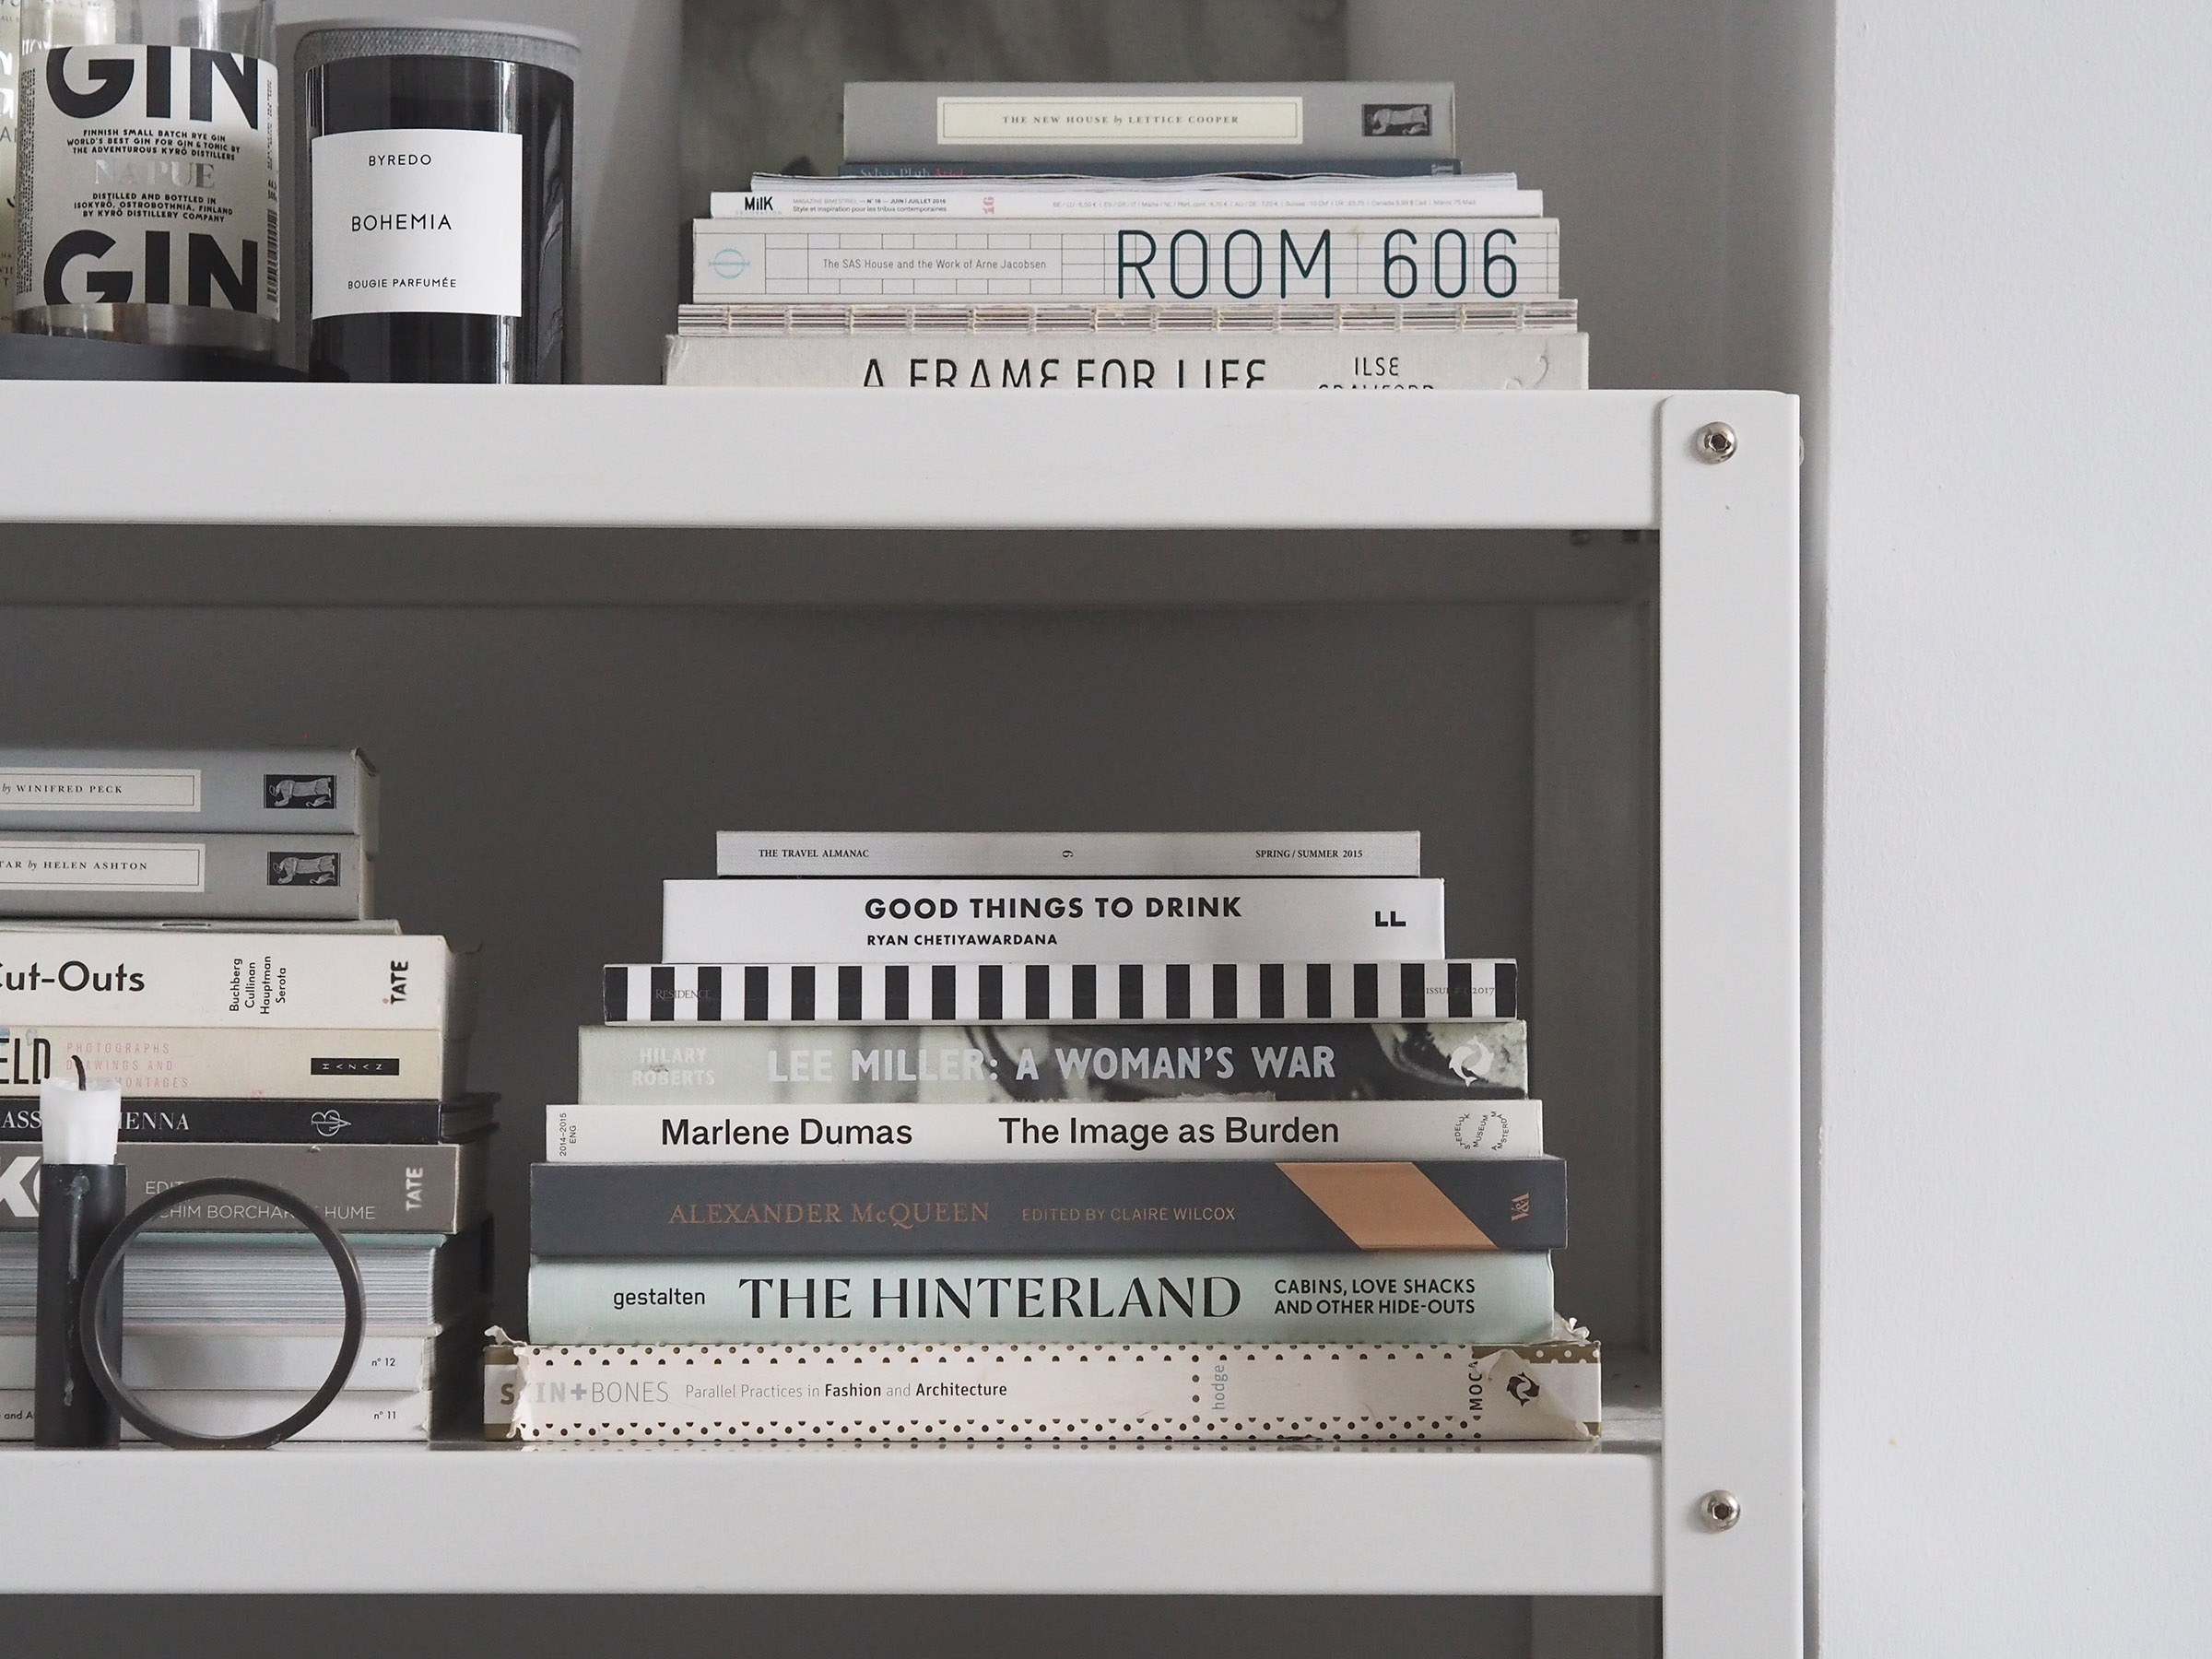 15 of the best design and interior books for 2019 cate st hill rh catesthill com